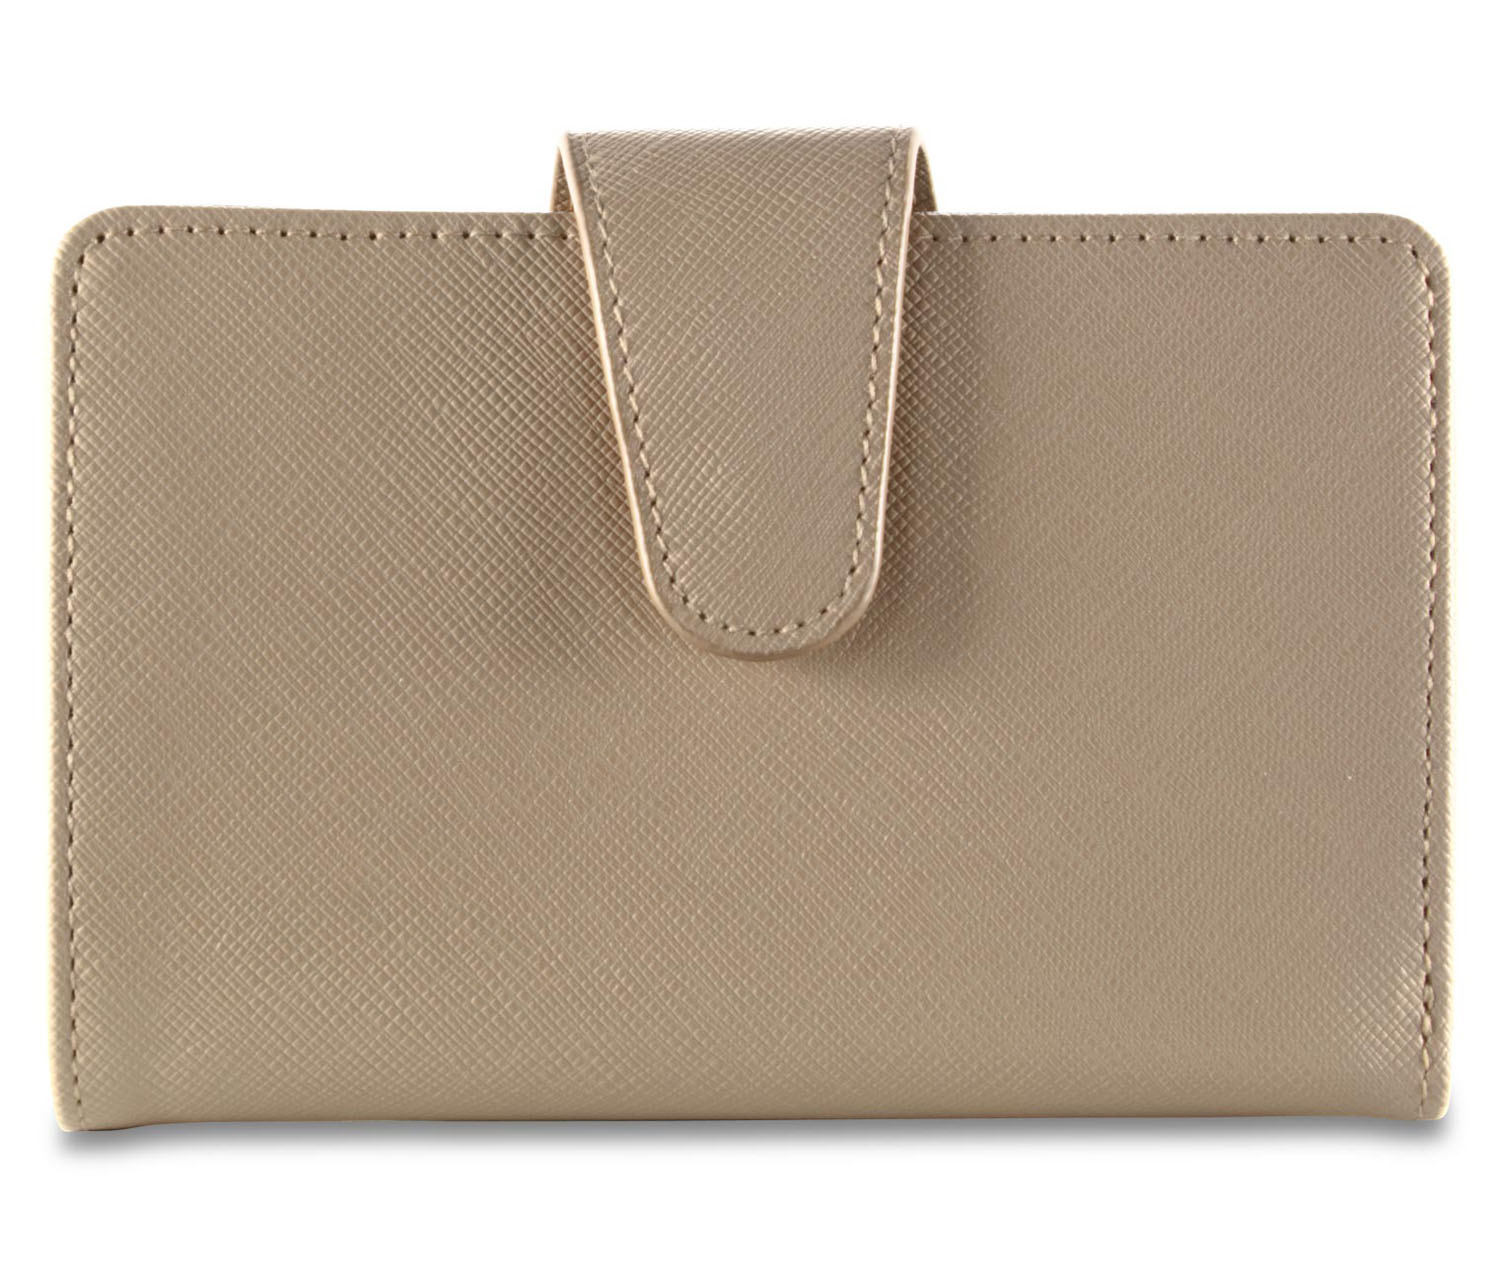 Womens Purse, BeigeLime  Brands For Less